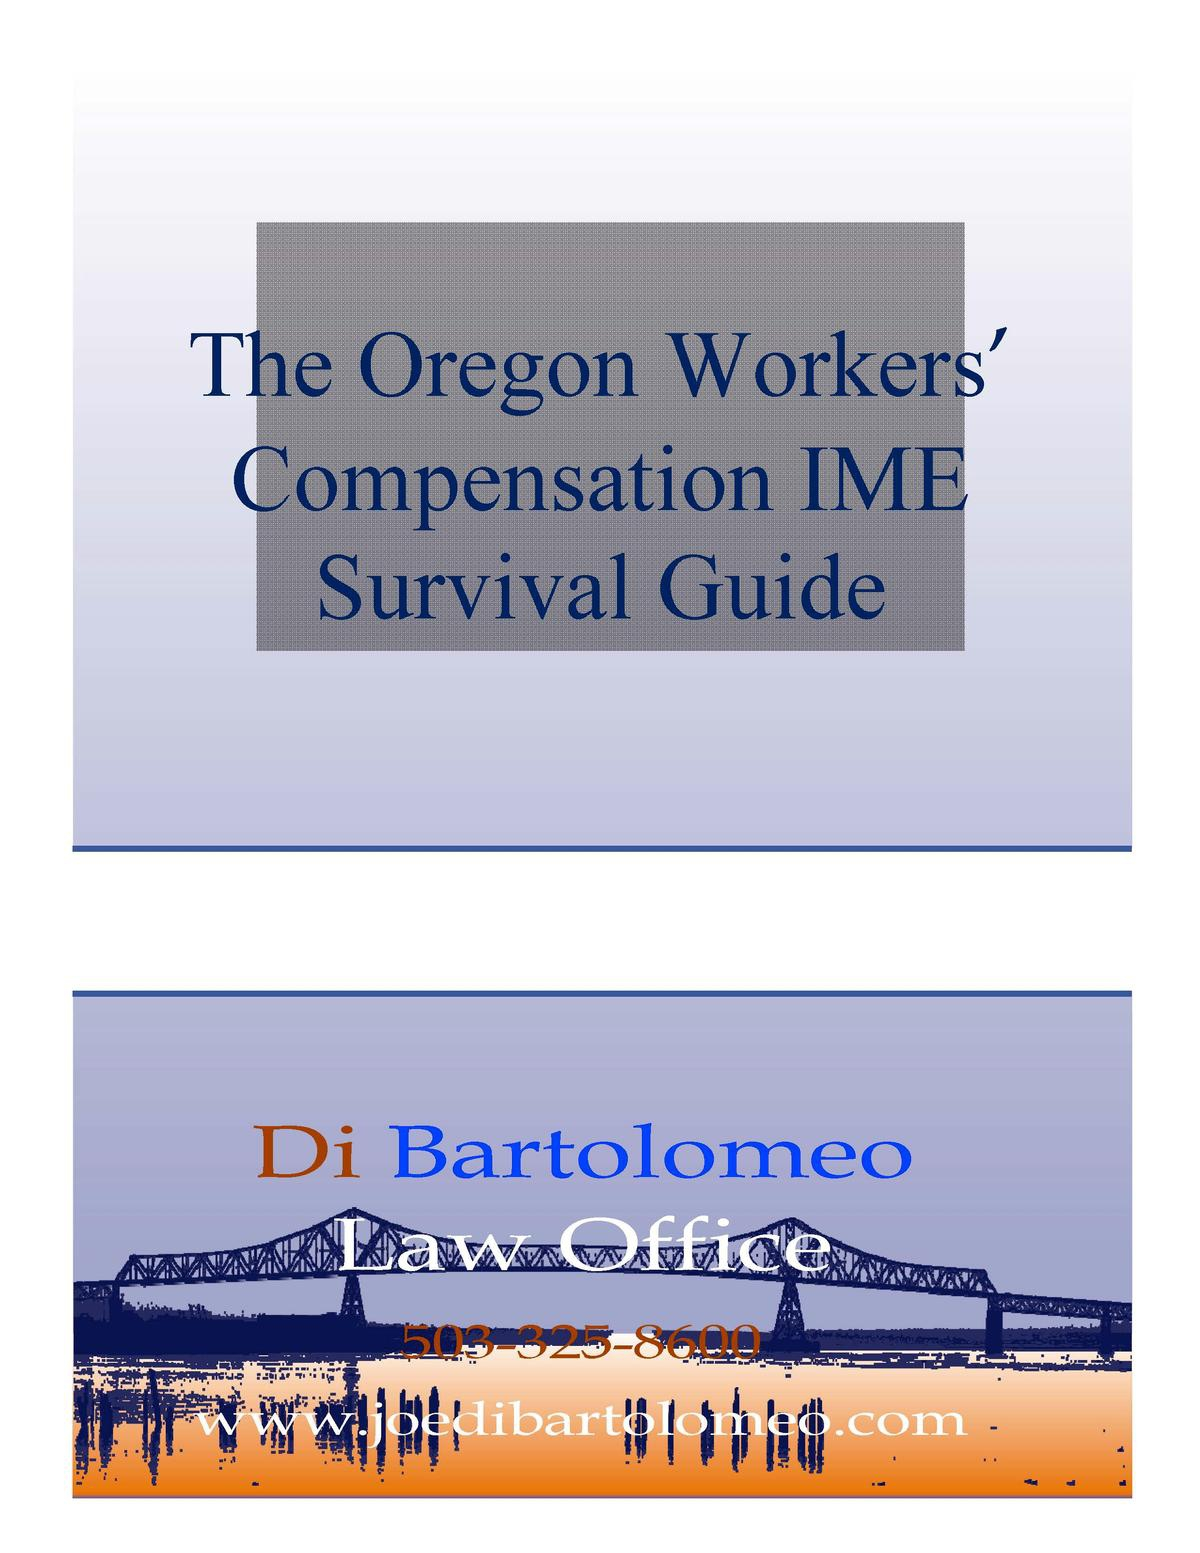 The Oregon Workers Compensation IME Survival Guide